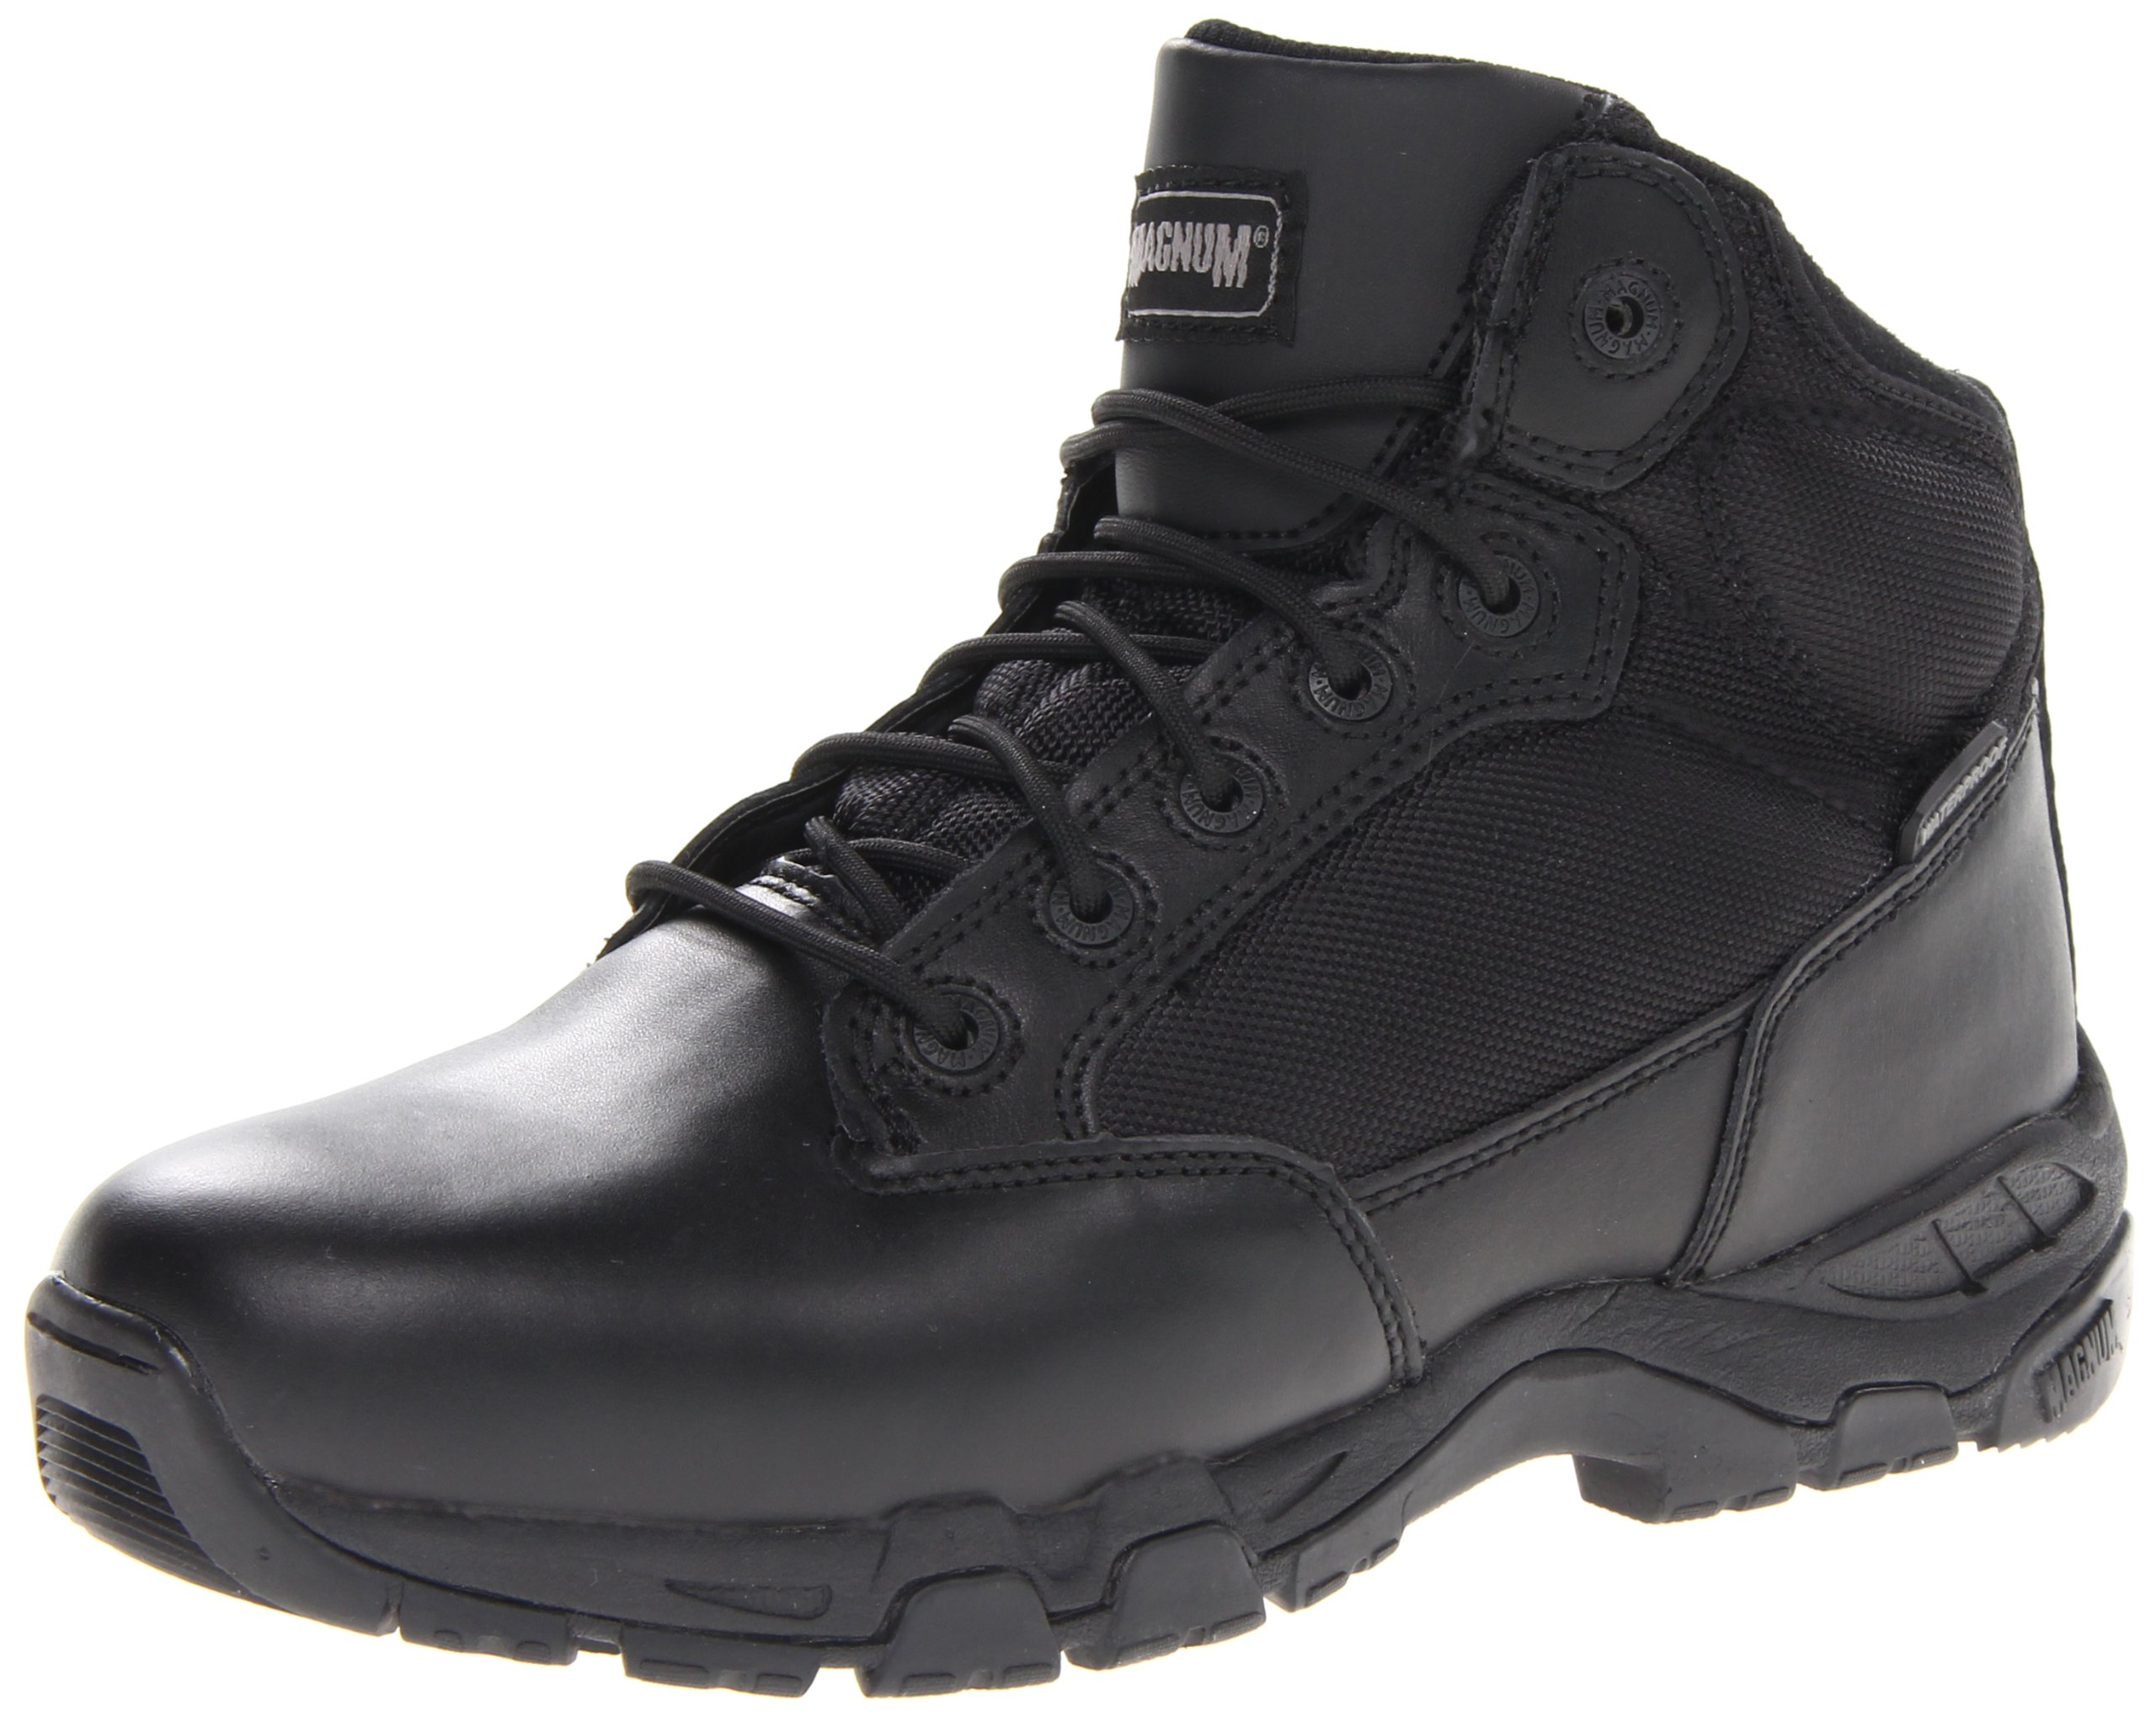 Magnum Men's Viper Pro 5 Waterproof Tactical Boot,Black,10.5 M US by Magnum